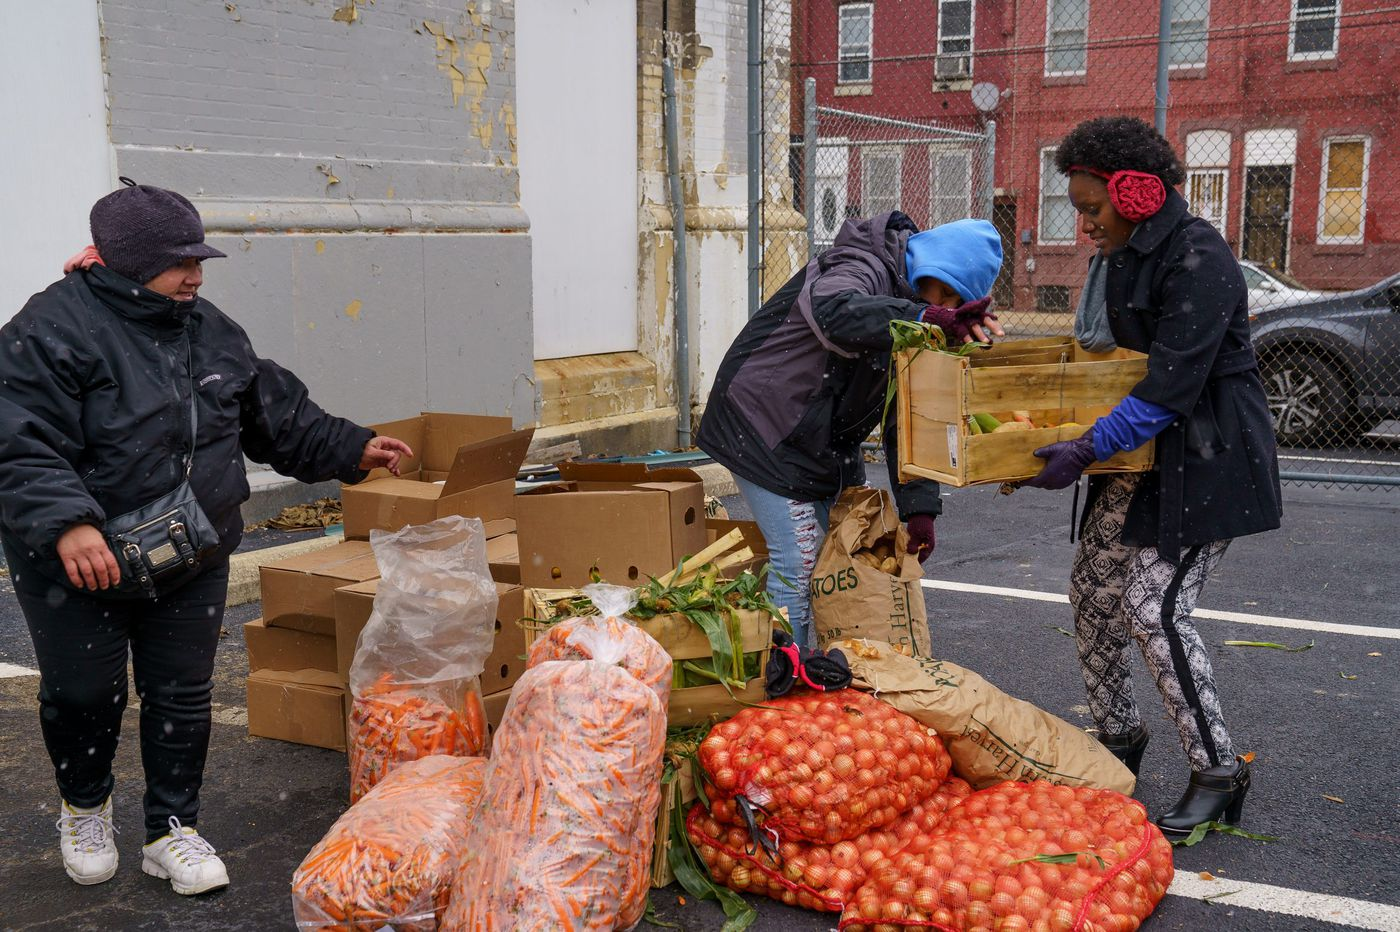 New Census figures on Philly neighborhoods show inequality, high numbers of whites living in poverty